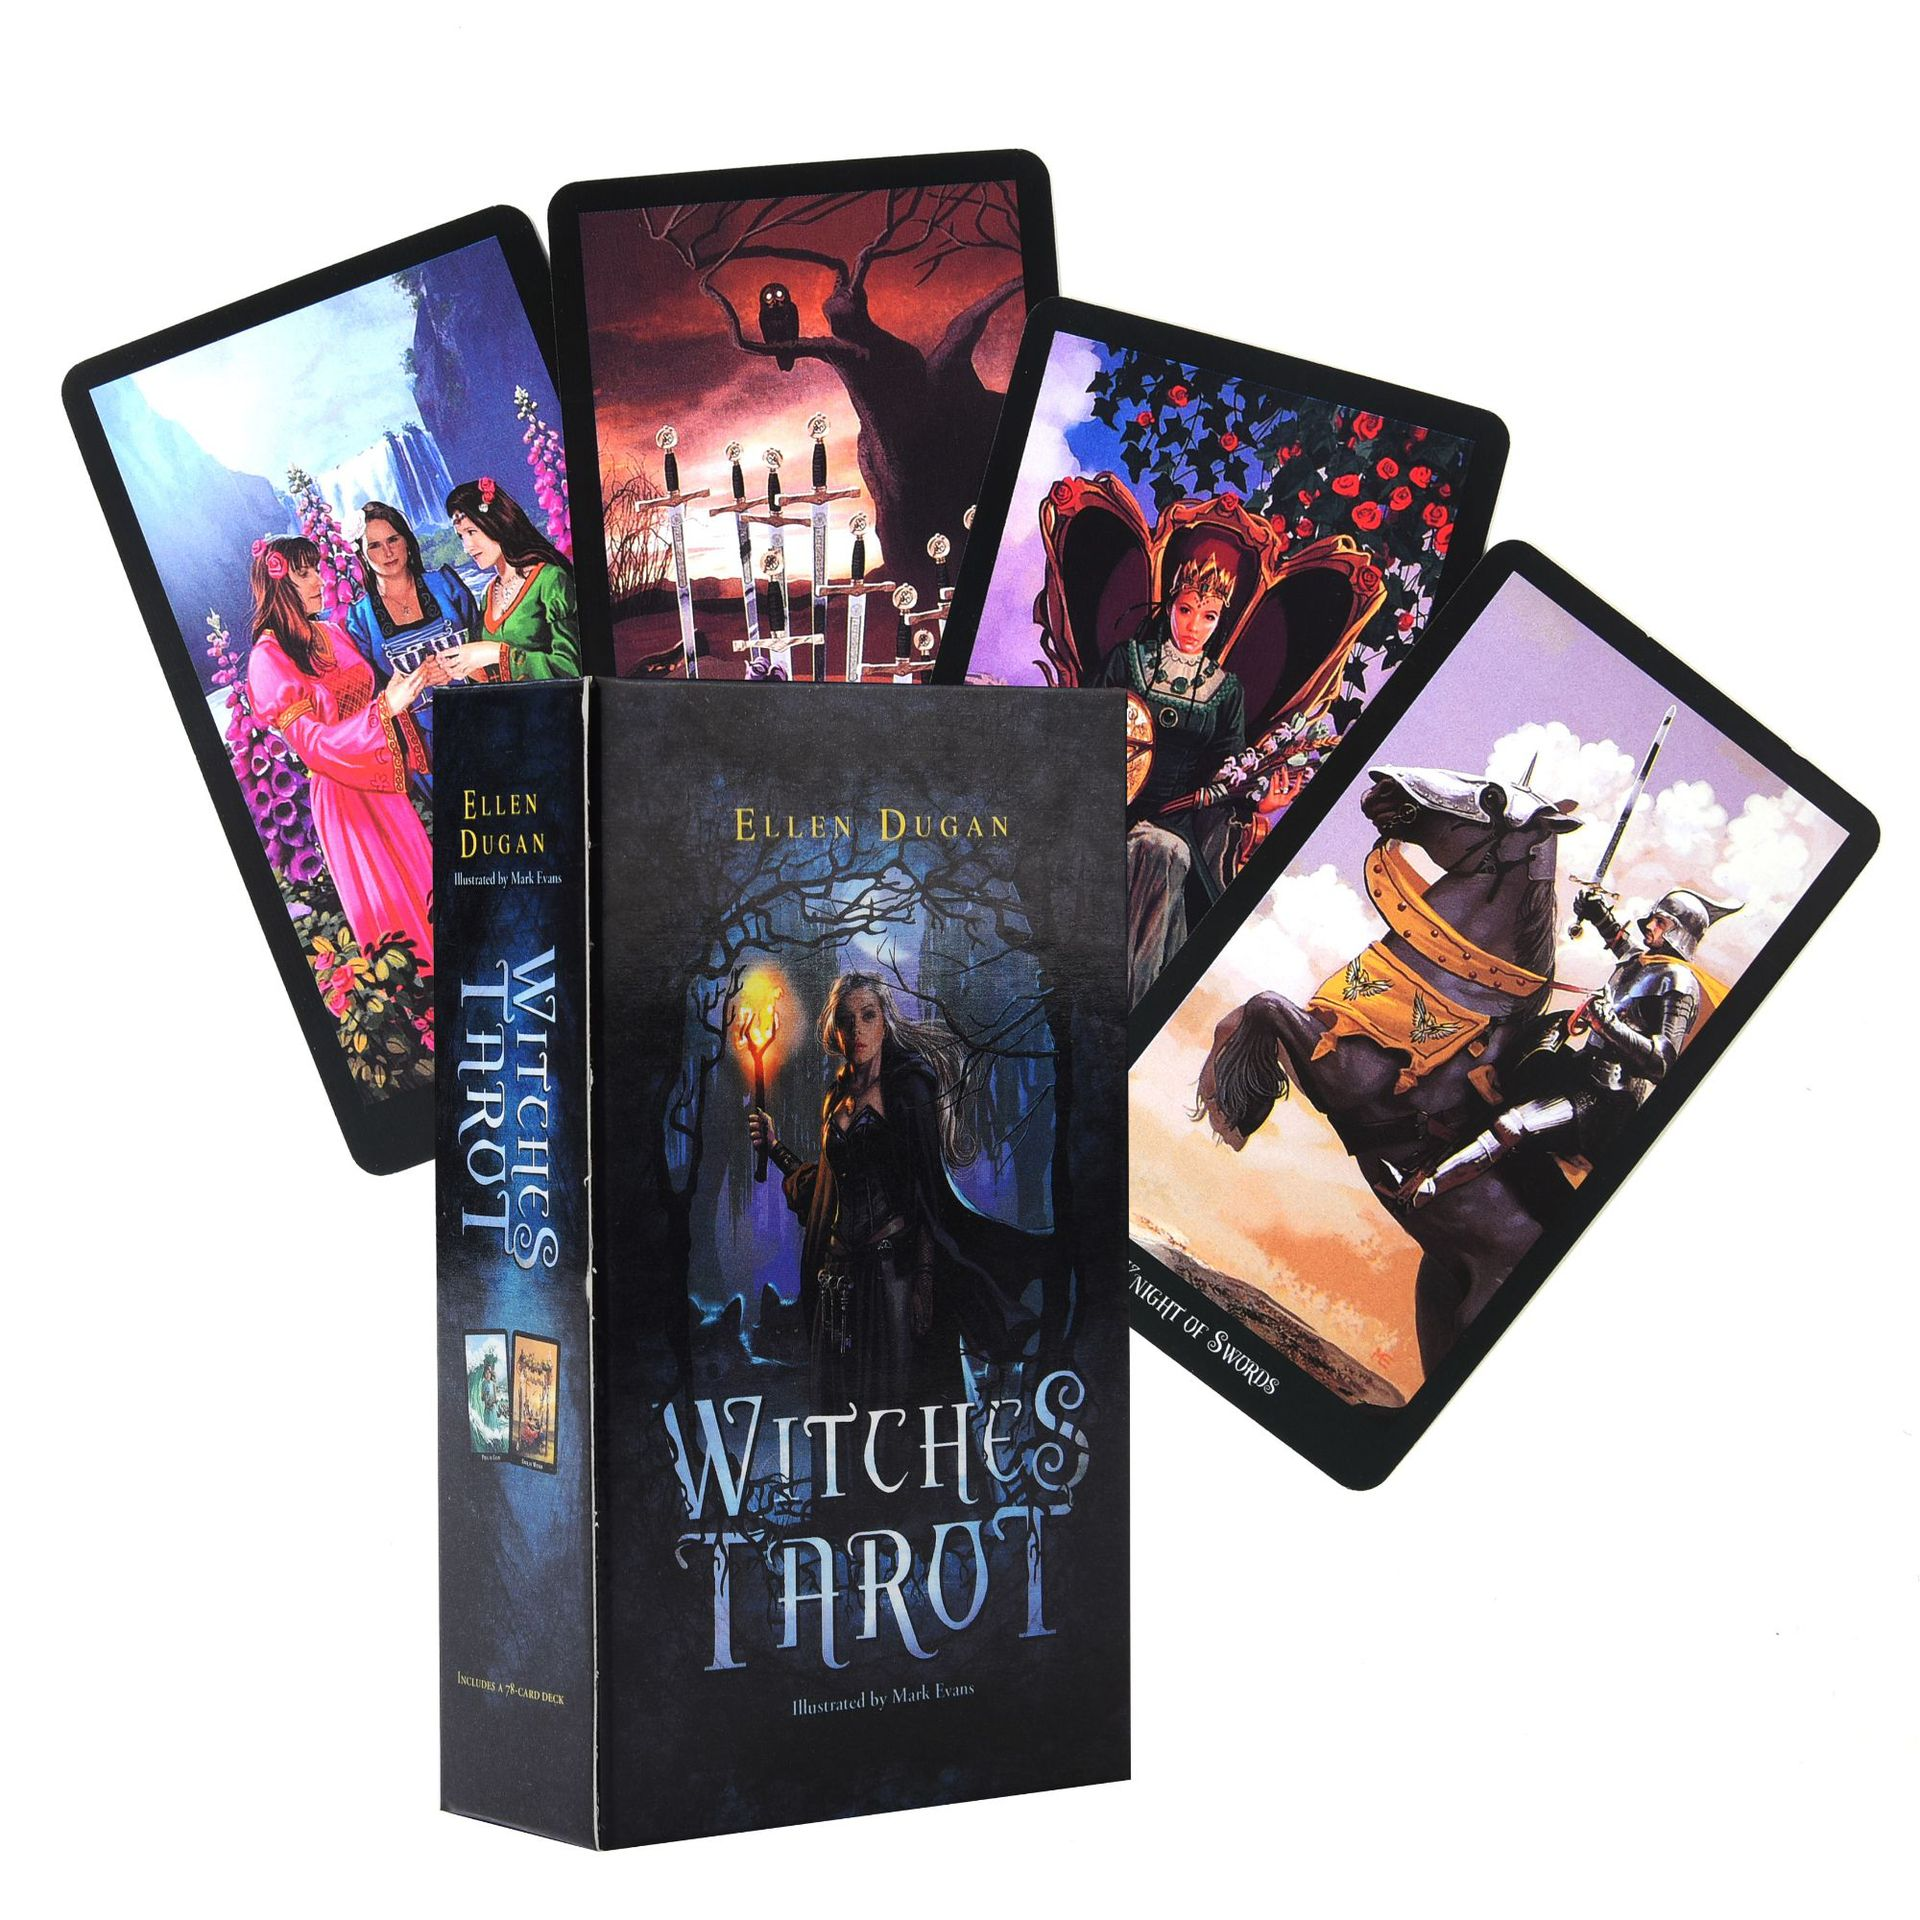 Witches Tarot Cards Box Set Game English Tarot Deck Table Card Game Board Games Party Playing Cards Entertainment Family Games